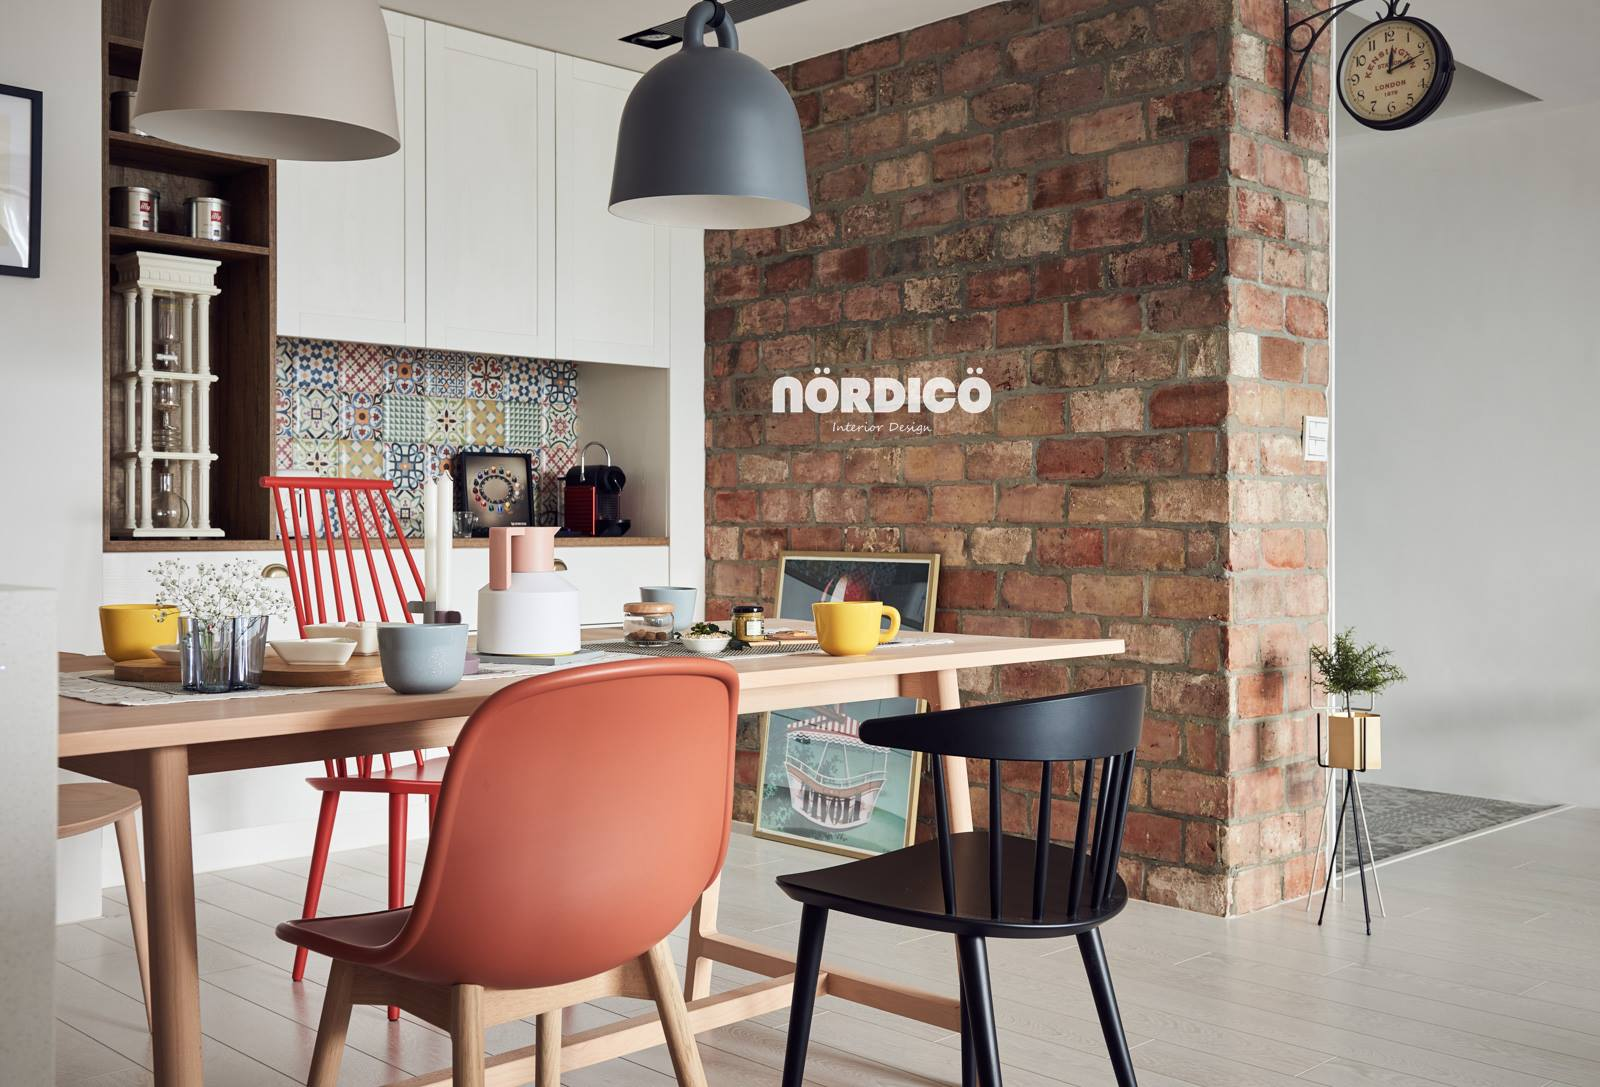 Admirable Mismatched Dining Chairs By Nordic Designers Interior Forskolin Free Trial Chair Design Images Forskolin Free Trialorg